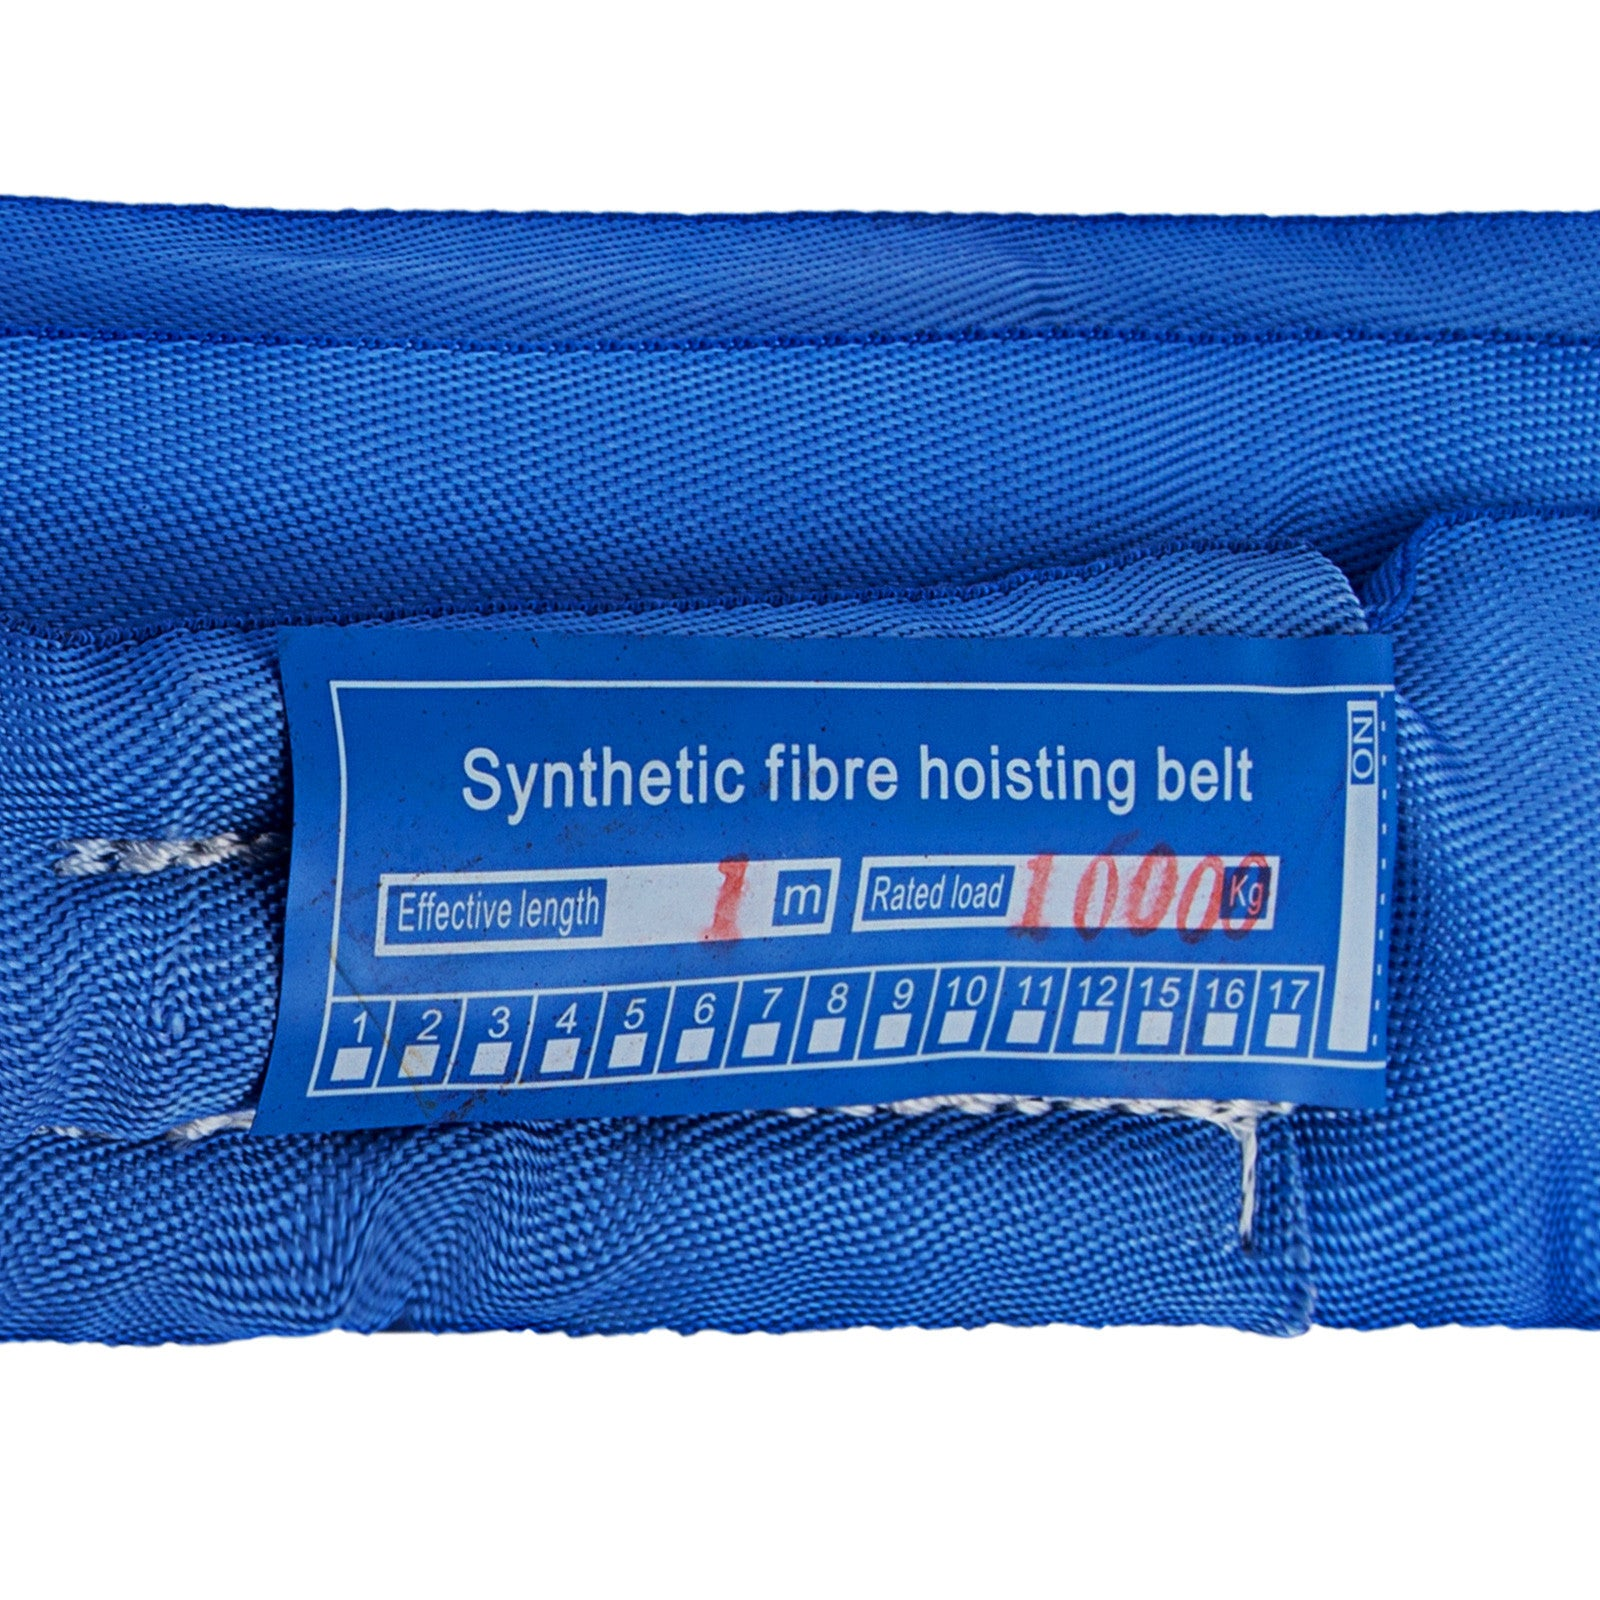 16.4ft Perimeter 17600lbs Endless Round Lifting Sling Blue Wear Resistance Strap